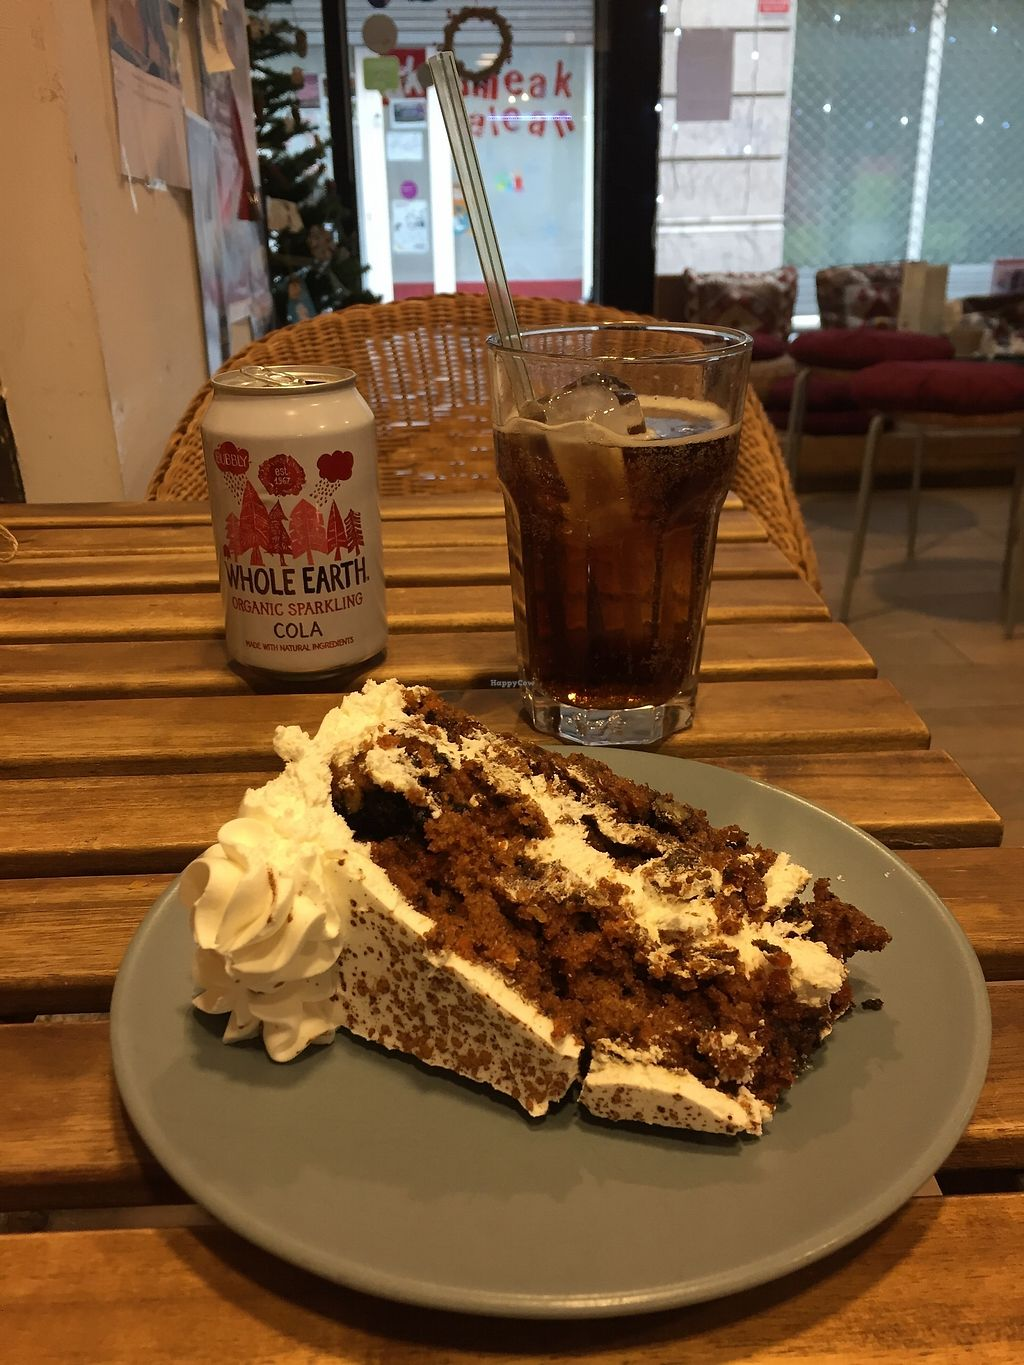 """Photo of Bohemian Lane  by <a href=""""/members/profile/StevieSurf"""">StevieSurf</a> <br/>Cake and cola <br/> December 24, 2017  - <a href='/contact/abuse/image/54543/338639'>Report</a>"""